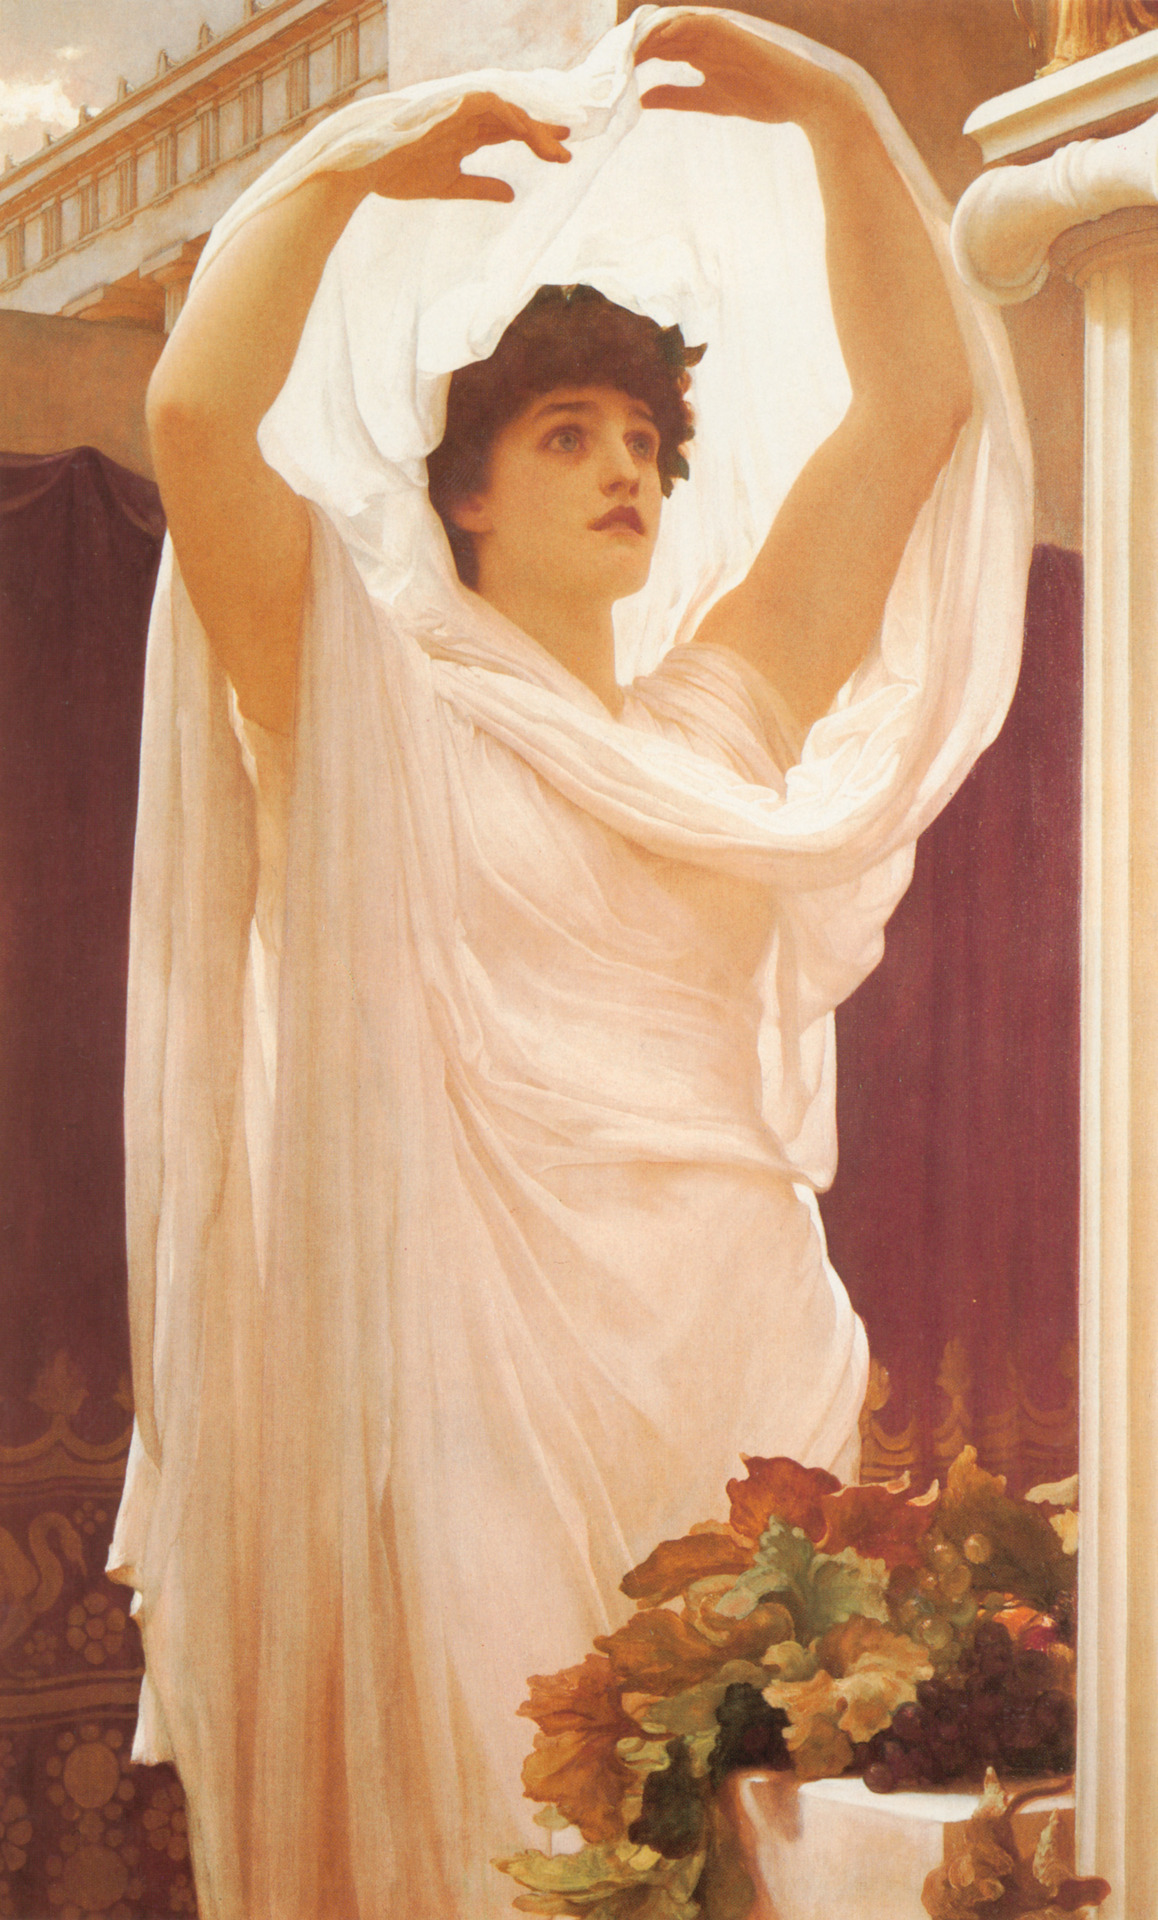 InvocationFrederic Leighton